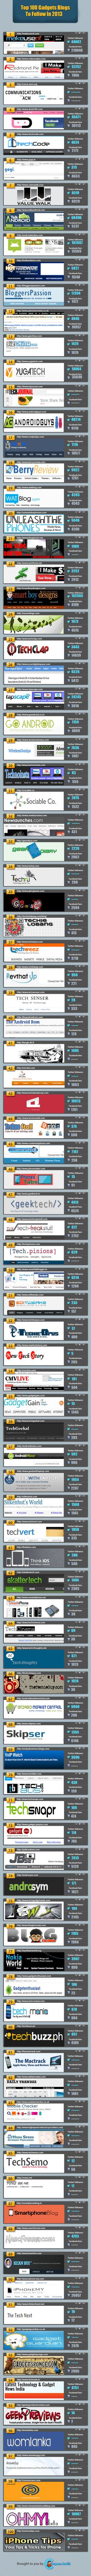 Top 100 Gadgets Blogs To Follow In 2013